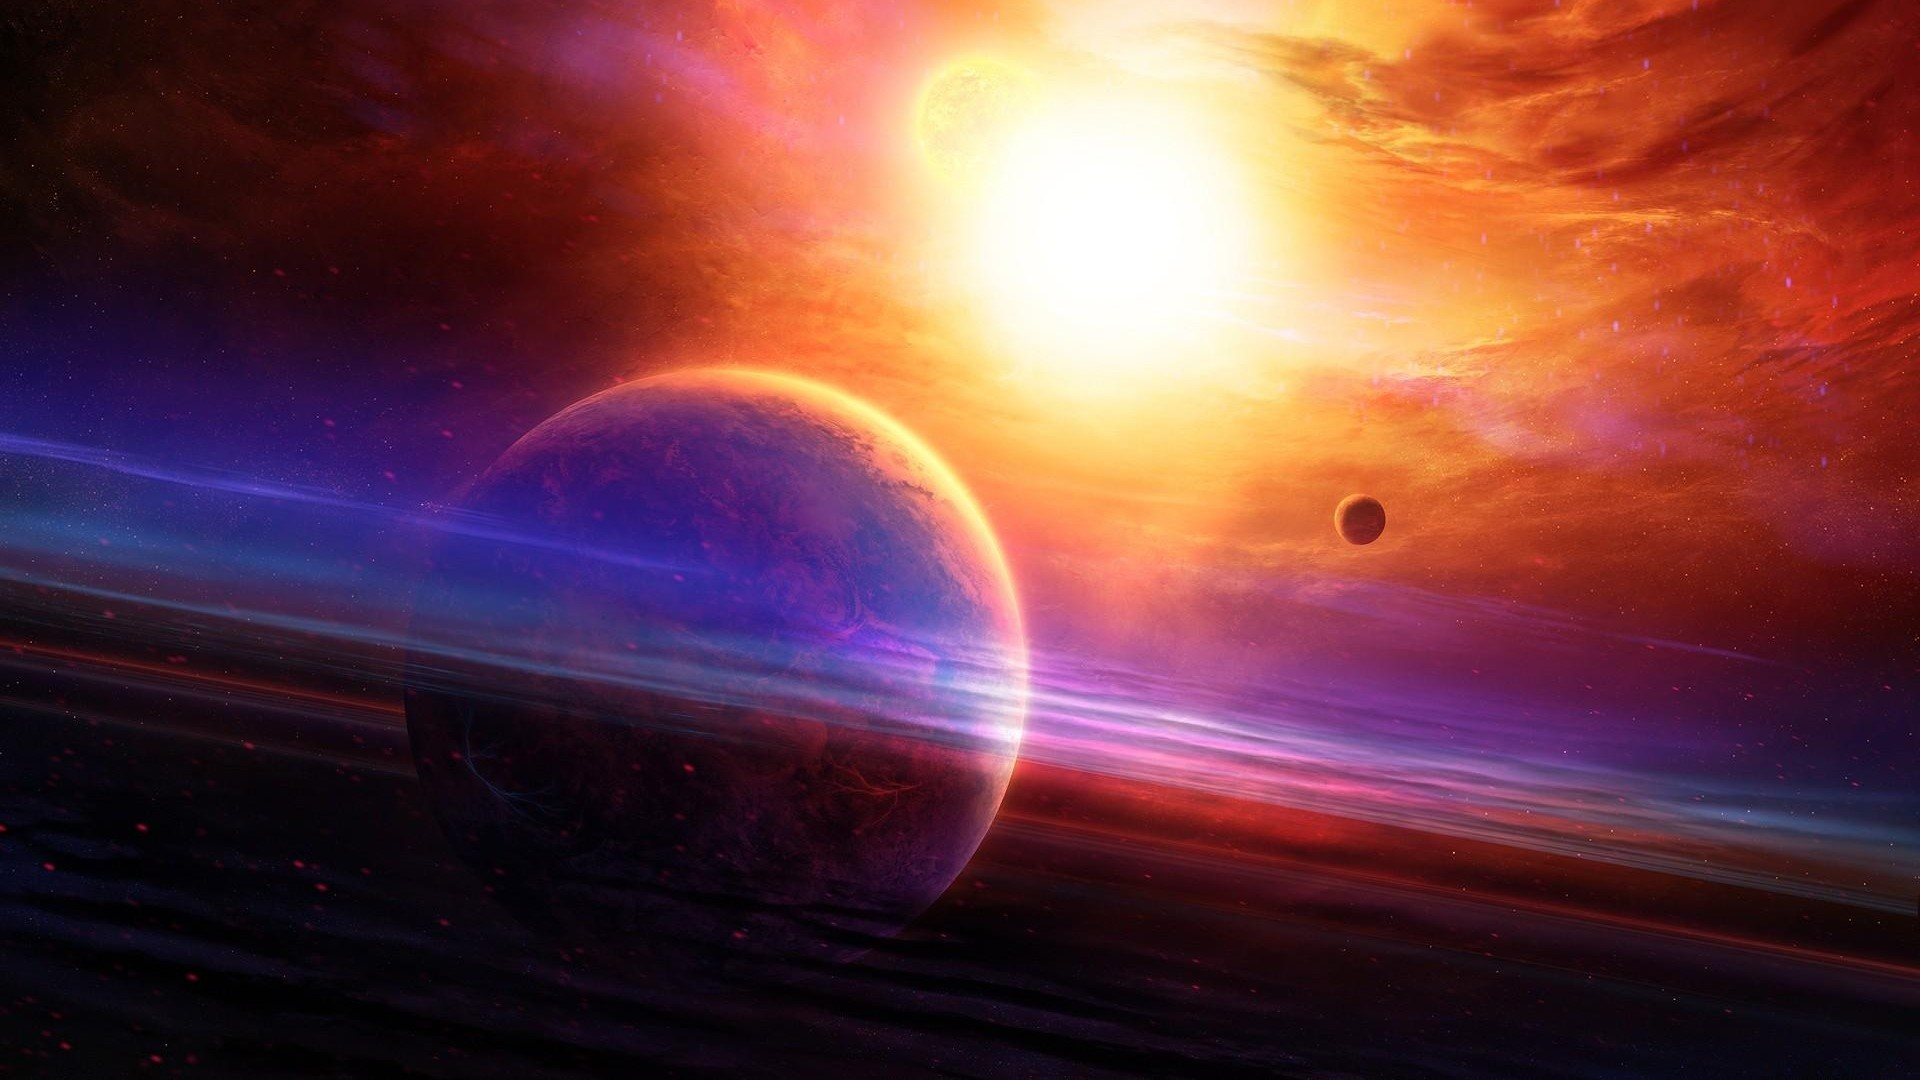 Download now full hd wallpaper planet with rings, supernova, glare, …